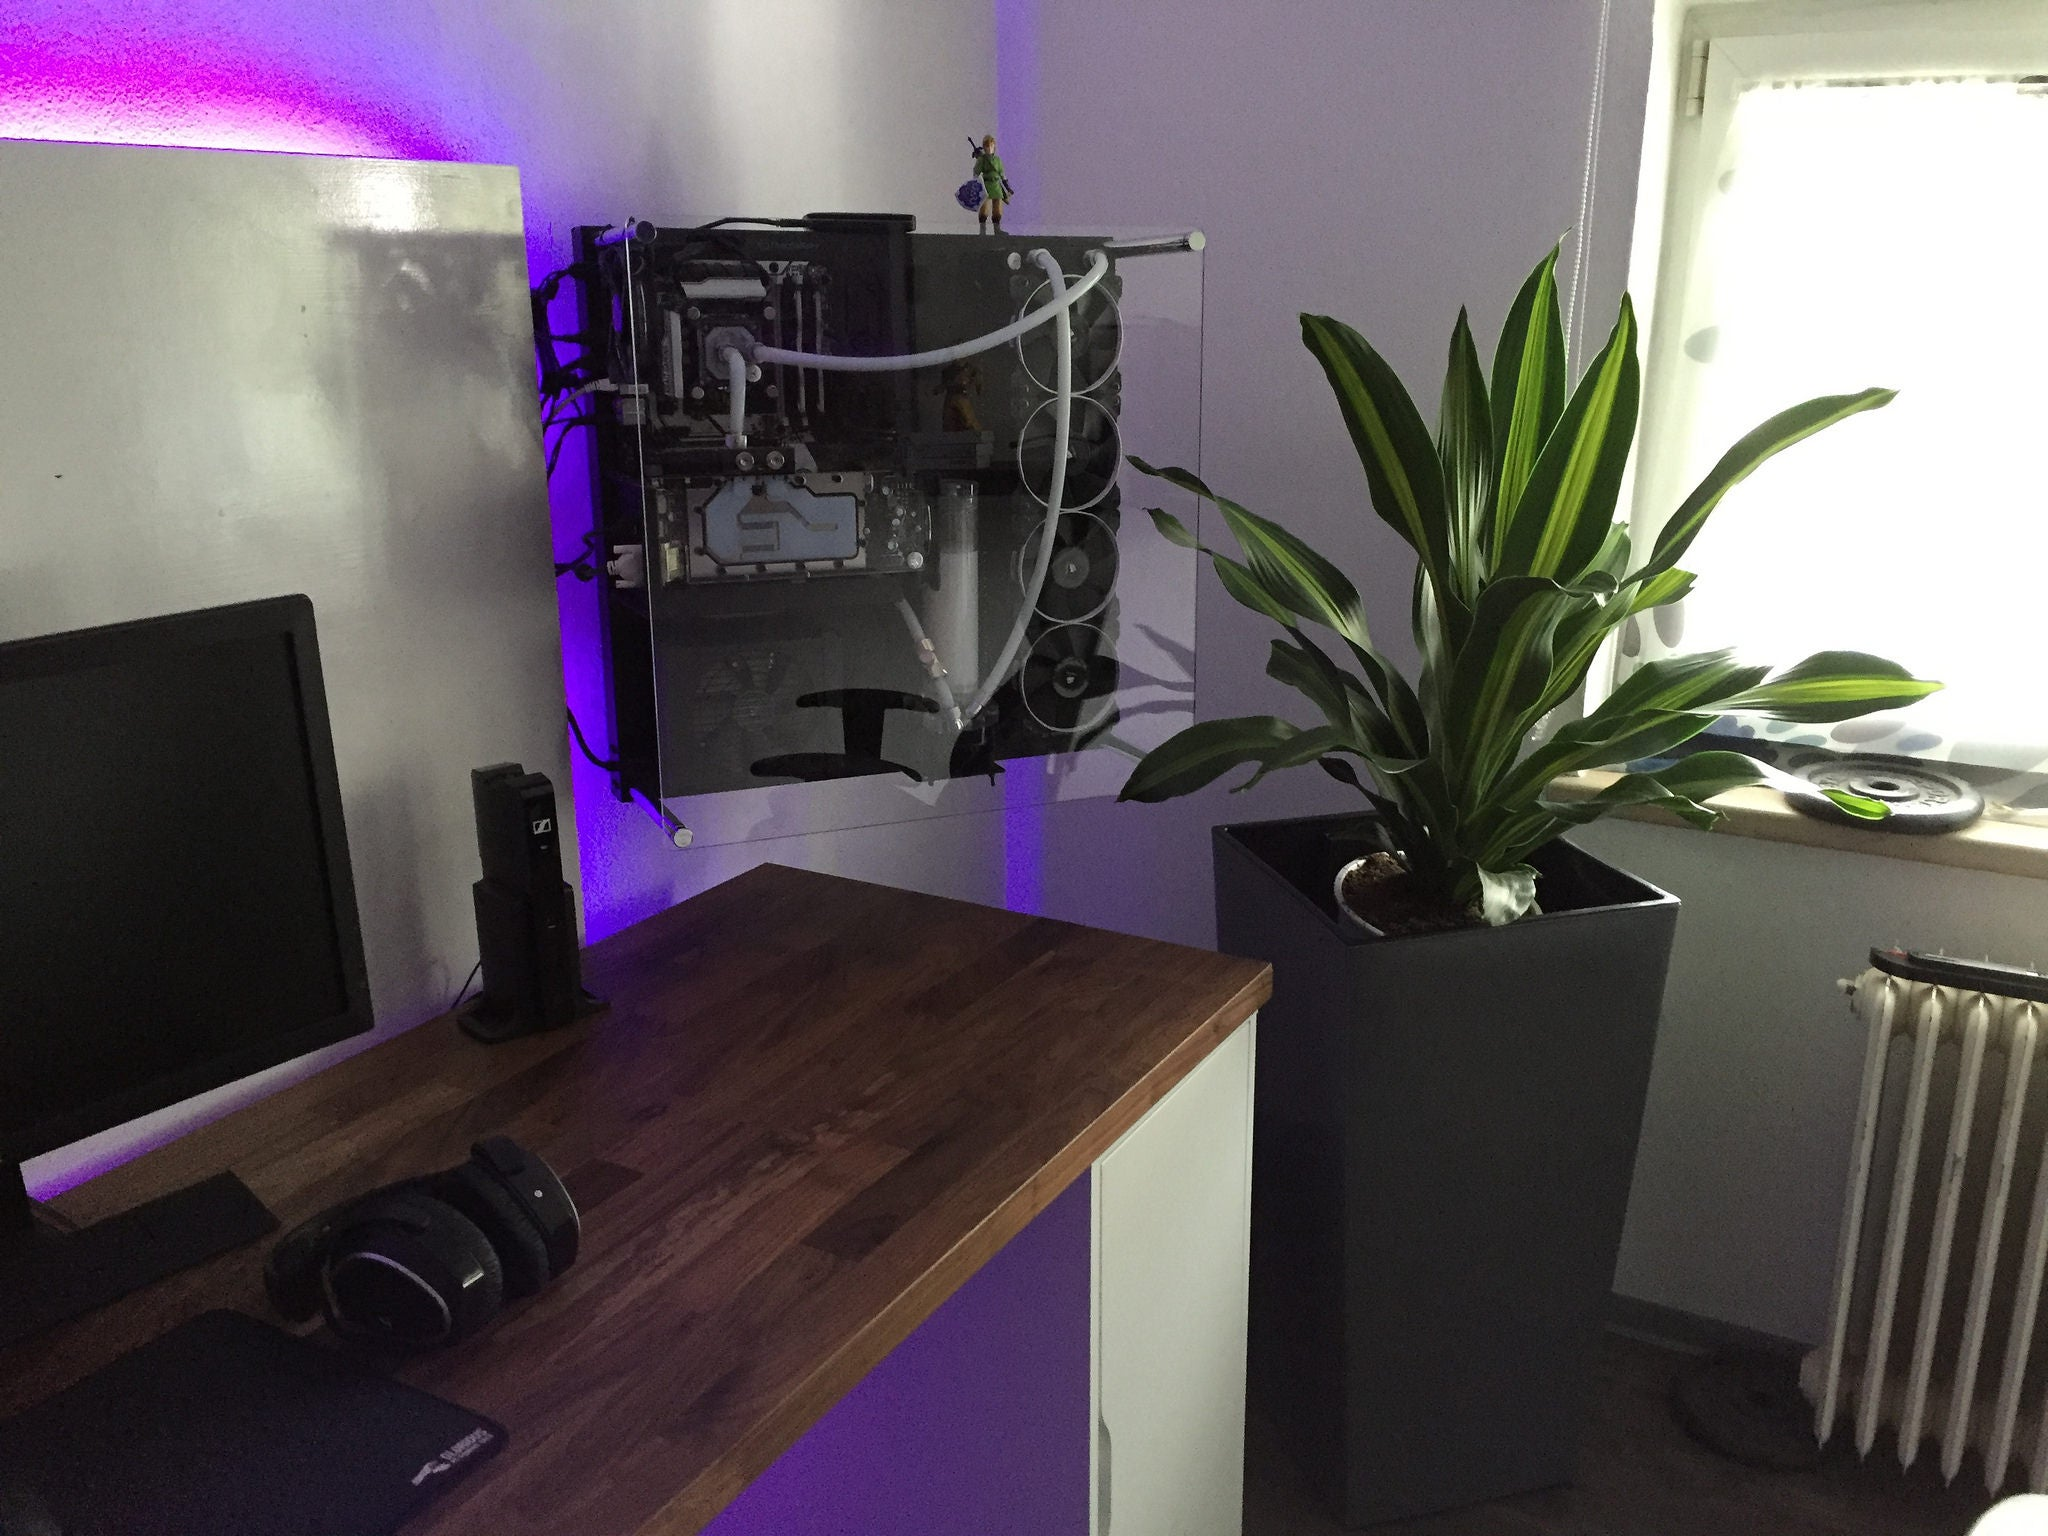 The Wall Mounted Workspace